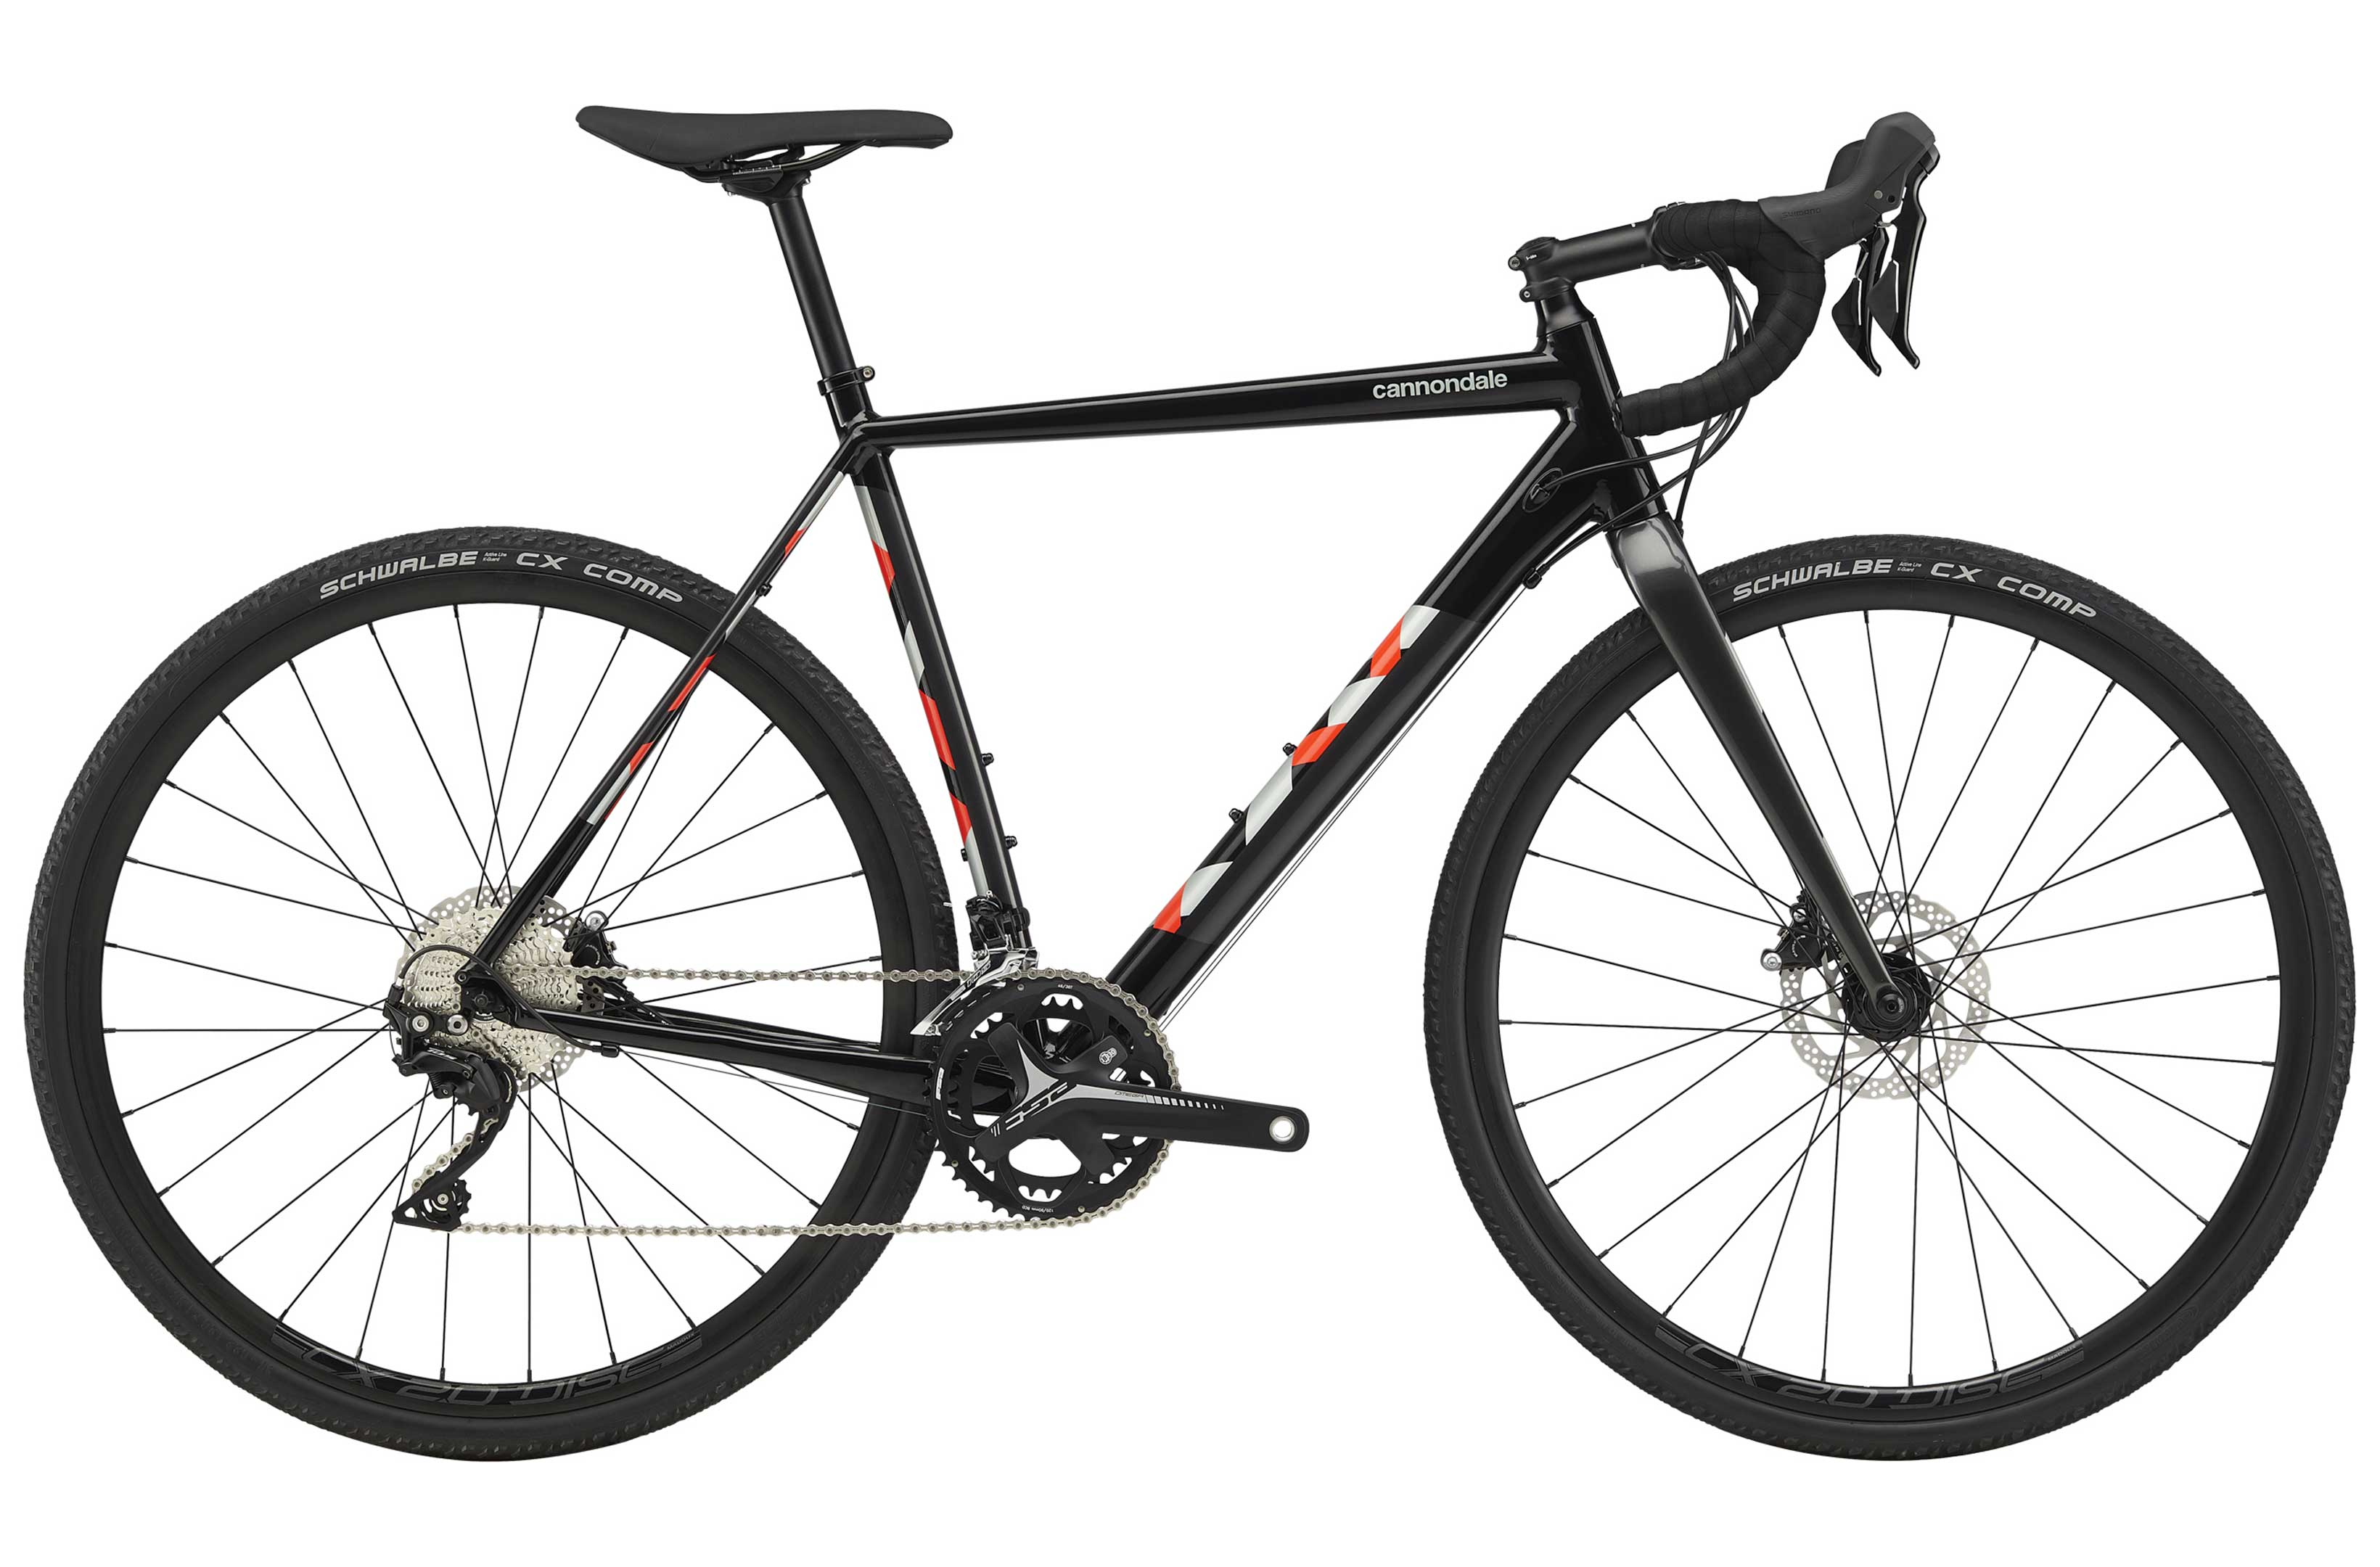 cannondale-caadx-105-2020-cyclocross-bike-black-EV360818-8500-1